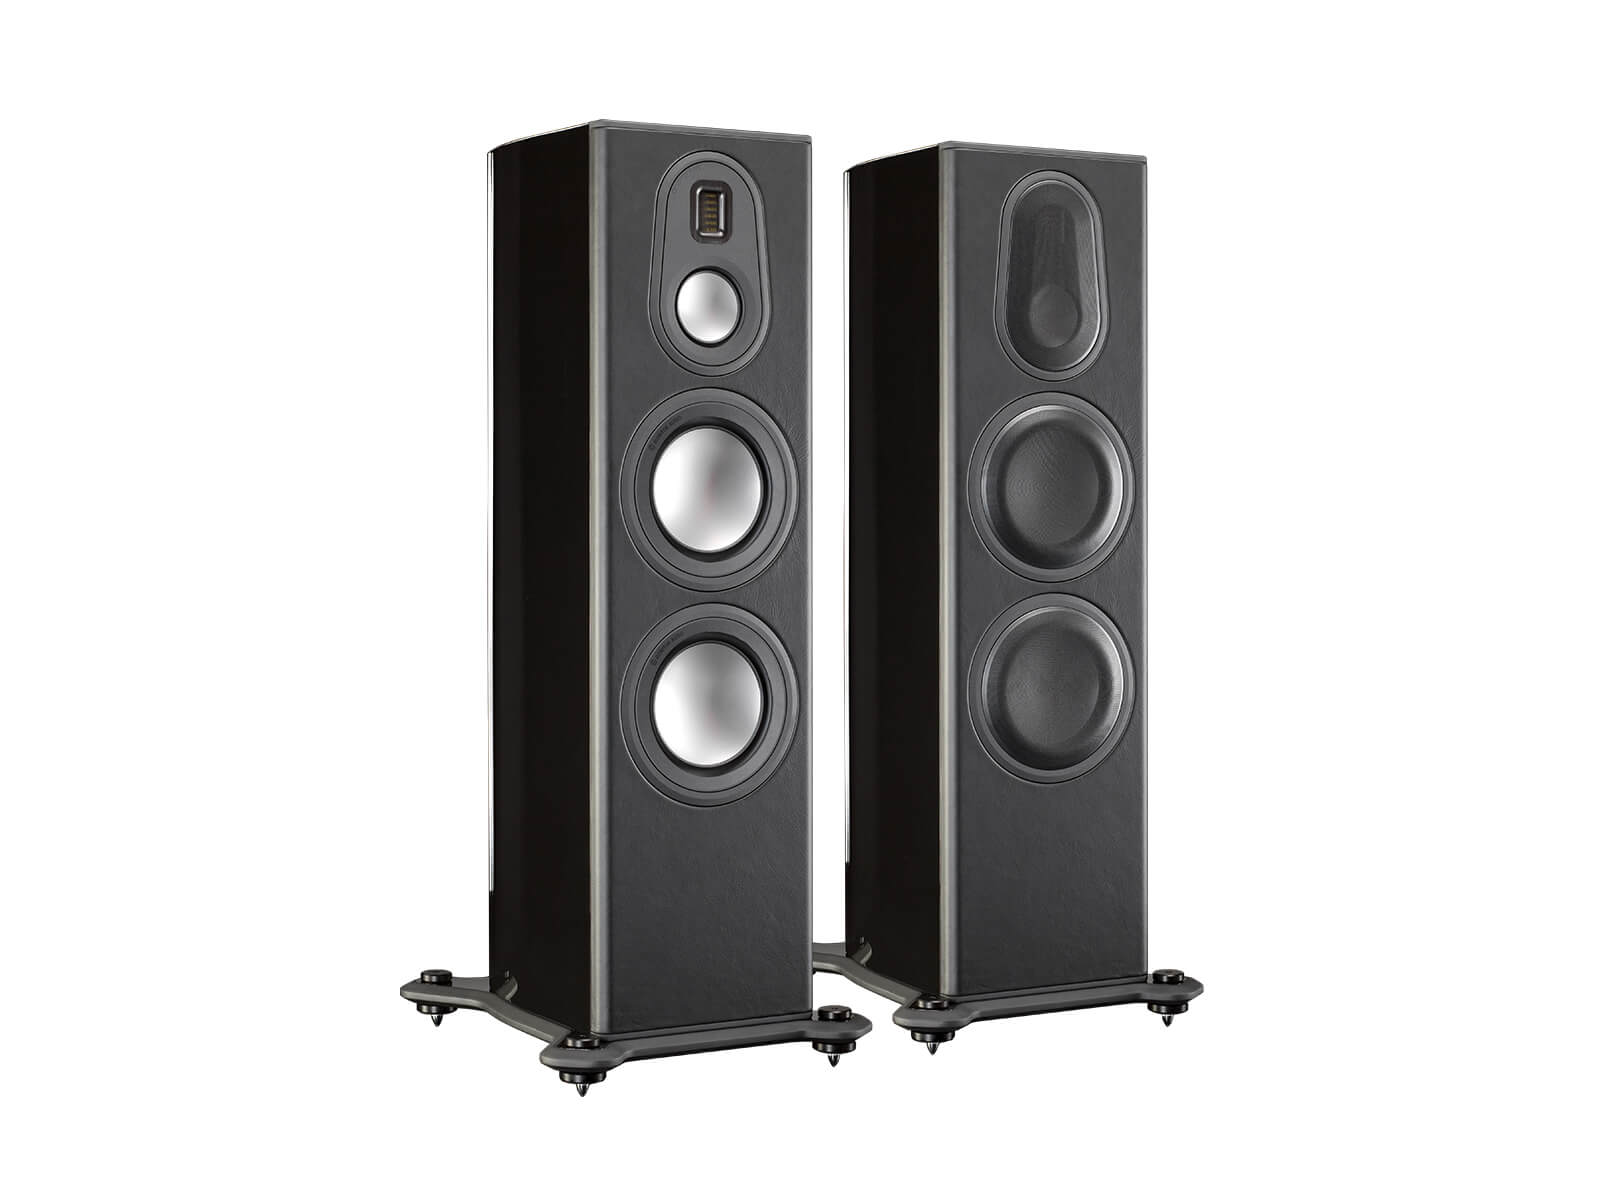 Platinum PL300 II, floorstanding speakers, featuring a grille and a piano black lacquer finish.